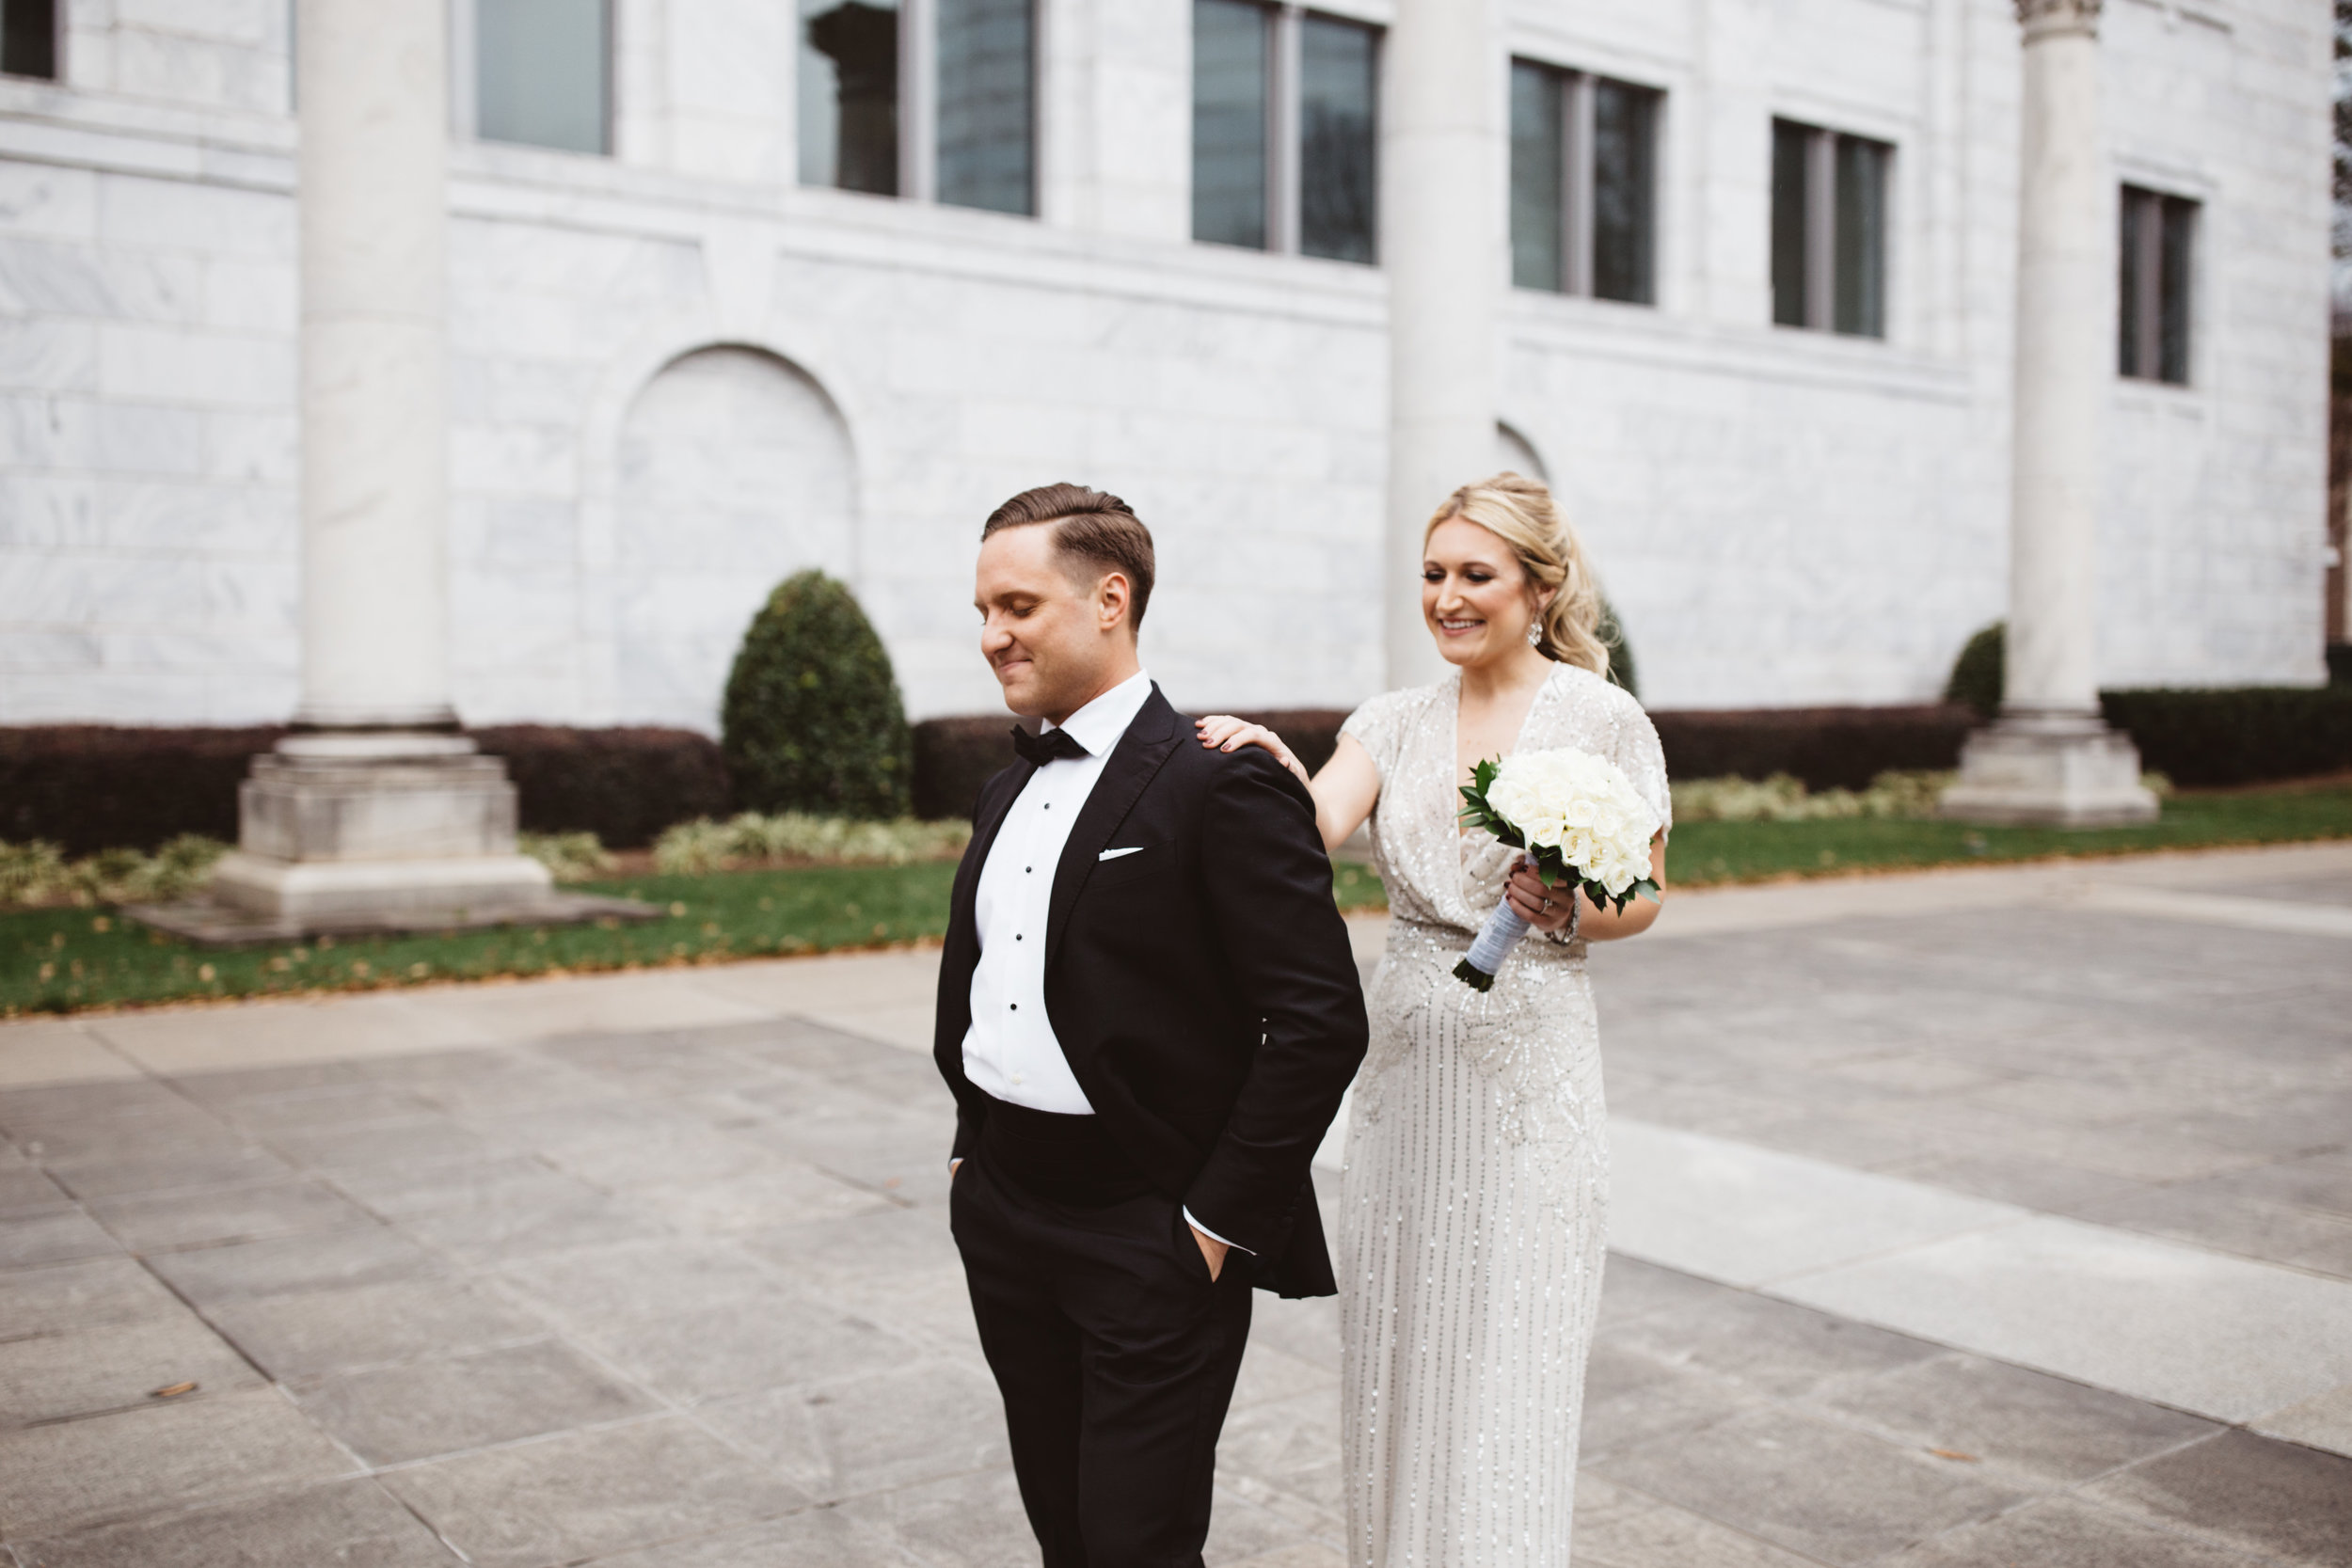 Mattie Bell Photography- Kelly & Zack Wedding Atlanta Brewery -97.jpg